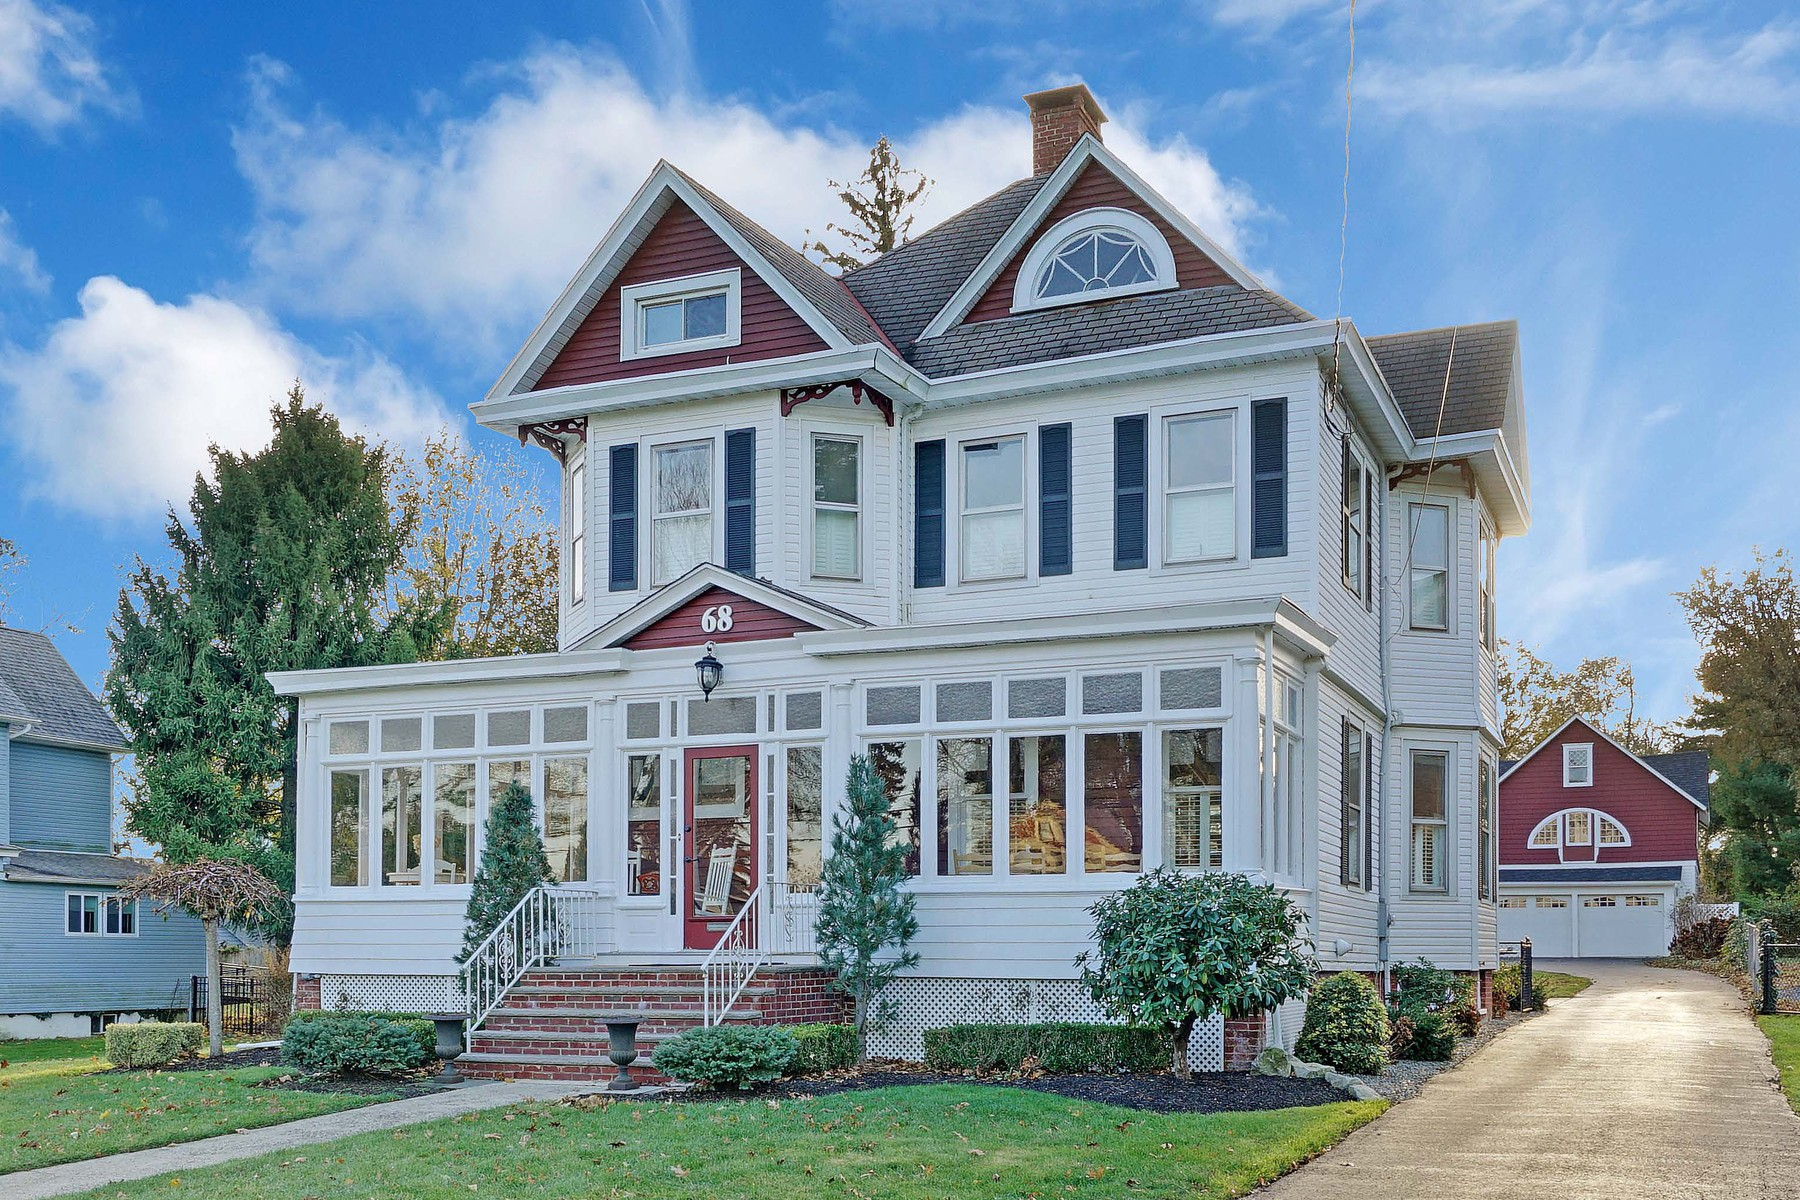 Single Family Home for Sale at Stately Victorian in Freehold 68 Court Street Freehold, New Jersey 07728 United States